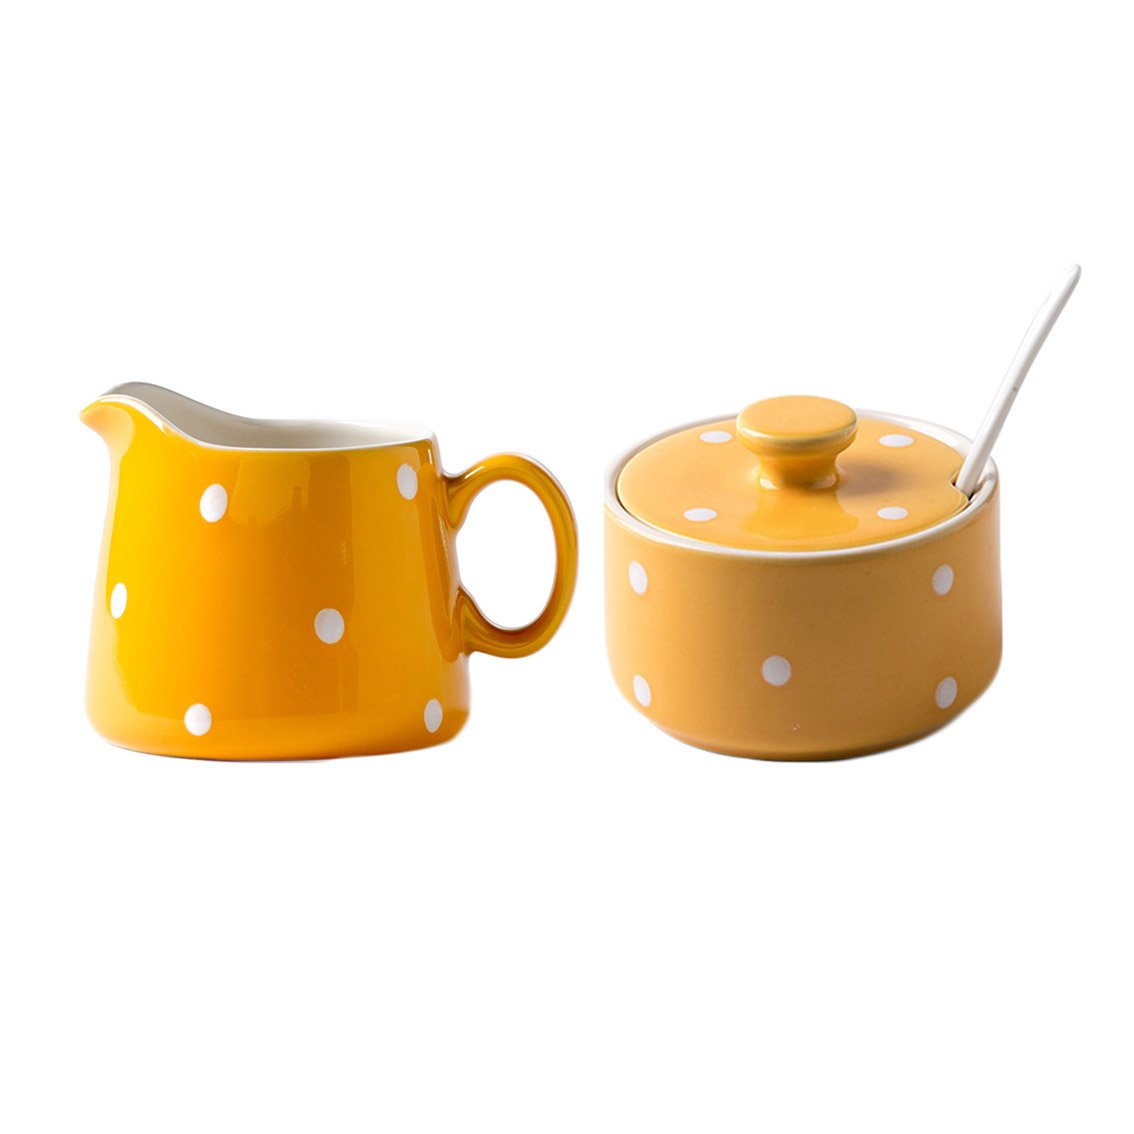 CHOOLD Chic Polka Dot Ceramic Sugar and Creamer Set with Spoon Creamer Serving Set for Coffee and Tea(Pink/Blue/Yellow)